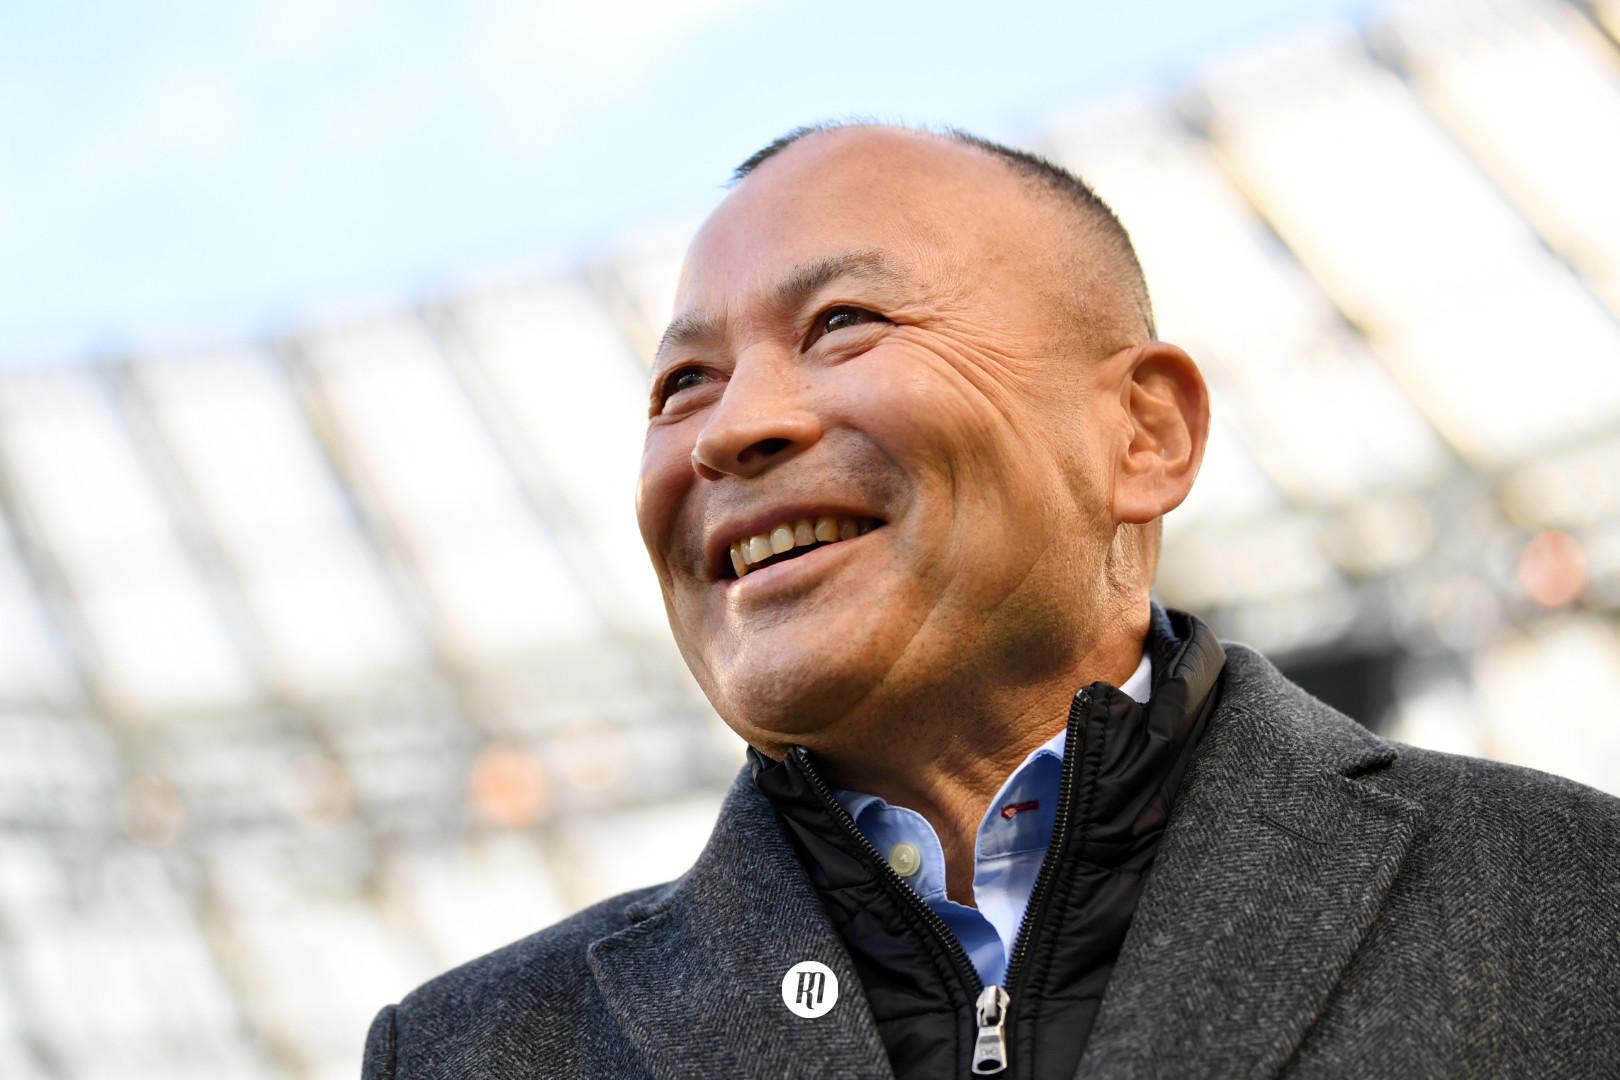 Eddie Jones defining night in Dublin